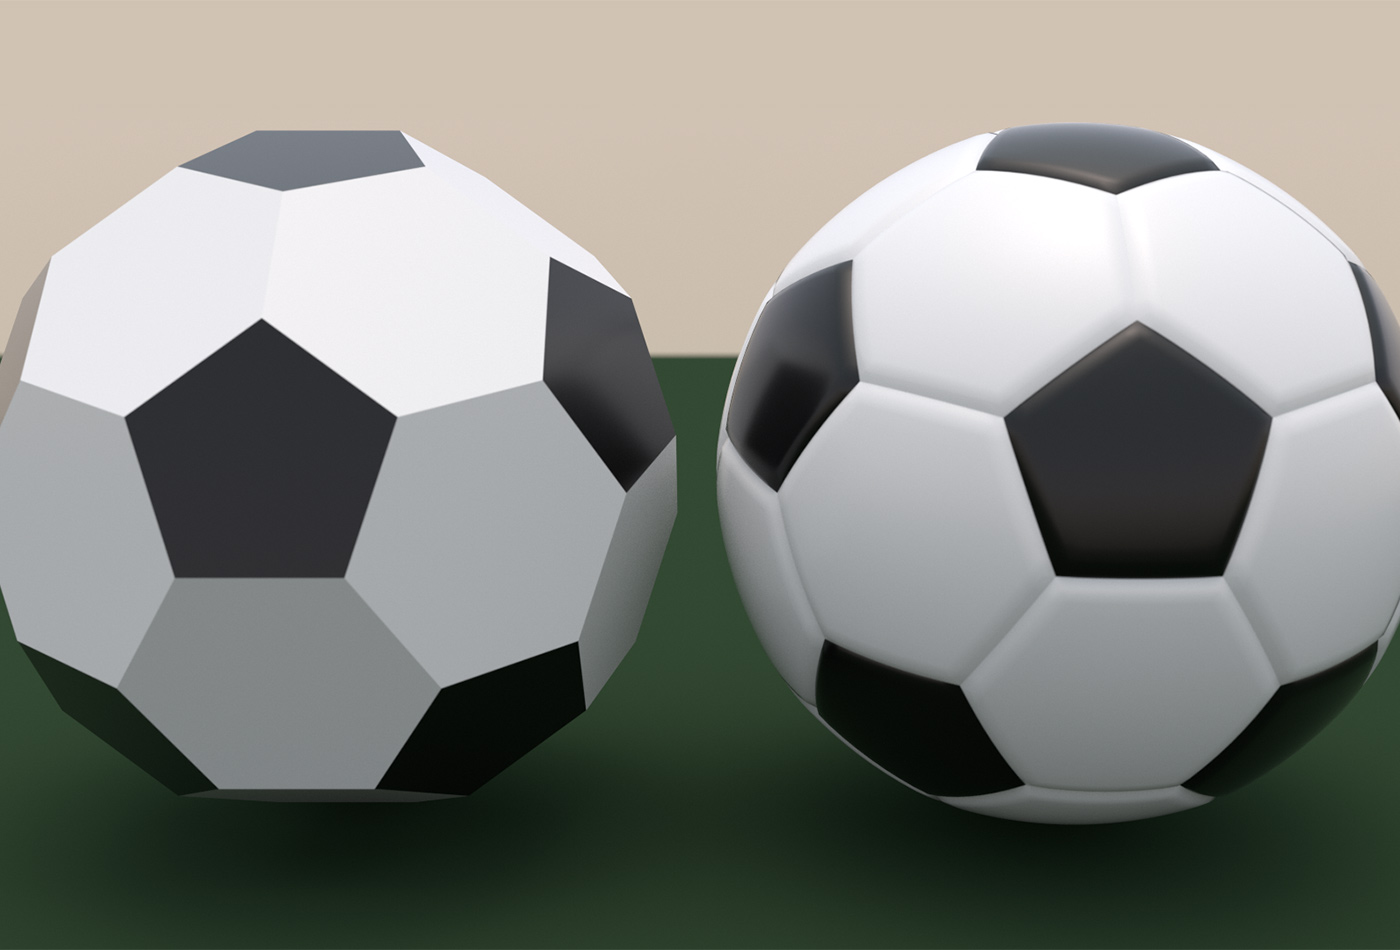 Comparison of a truncated icosahedron and a soccer ball